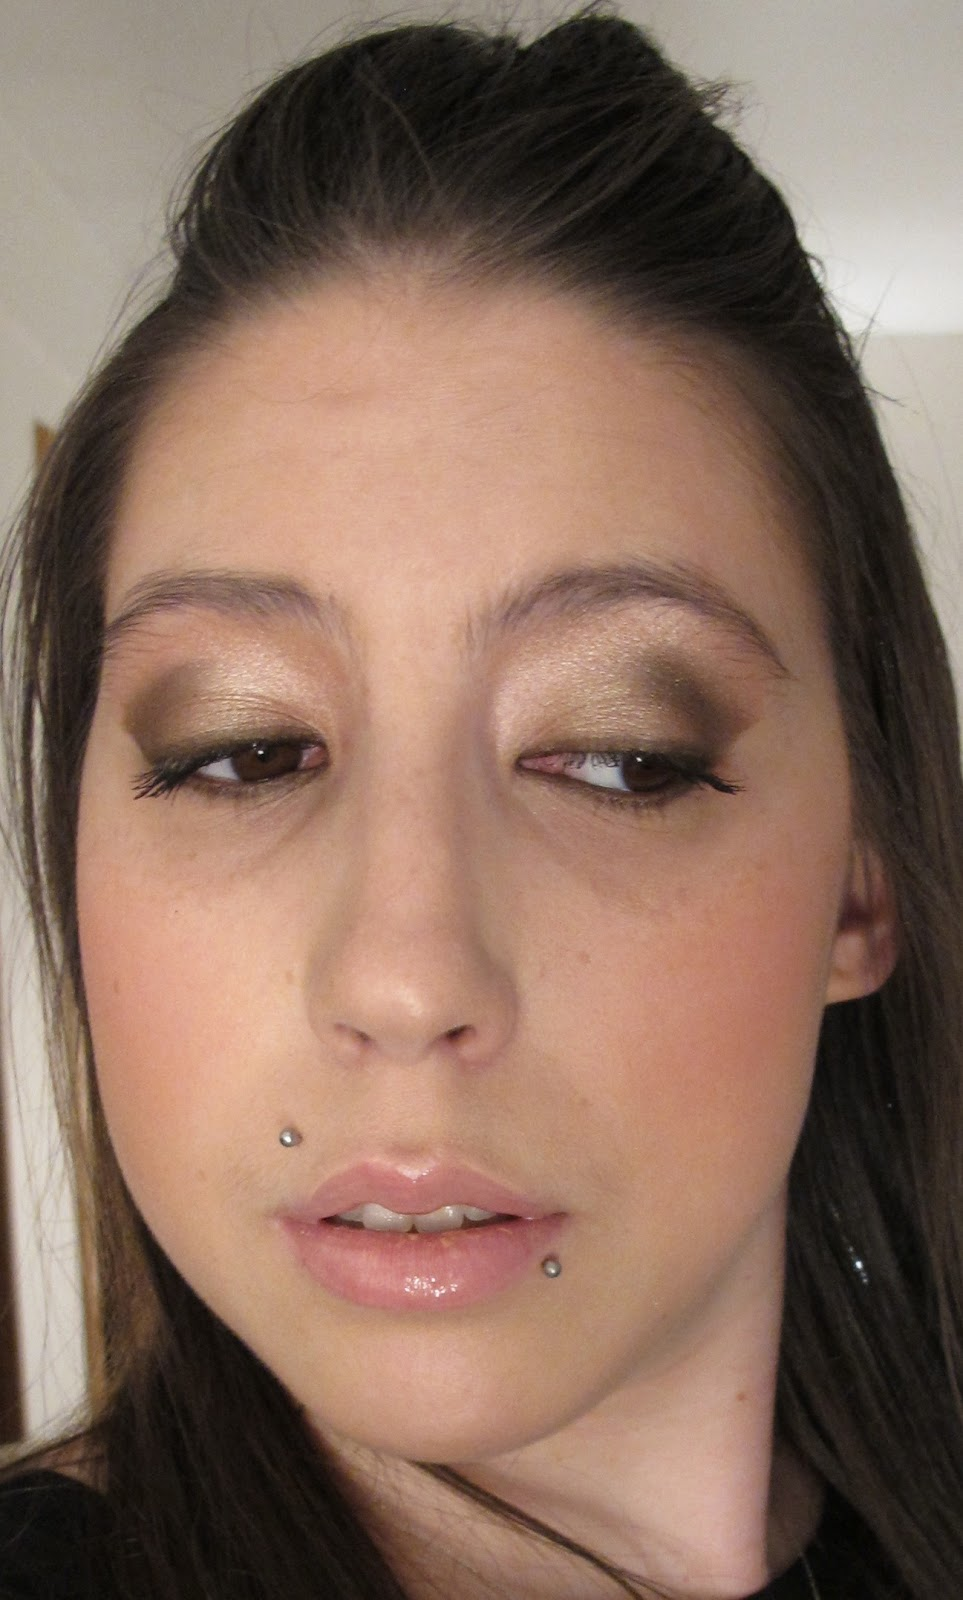 Steph Stud Makeup: Urban Decay Naked Nails using the